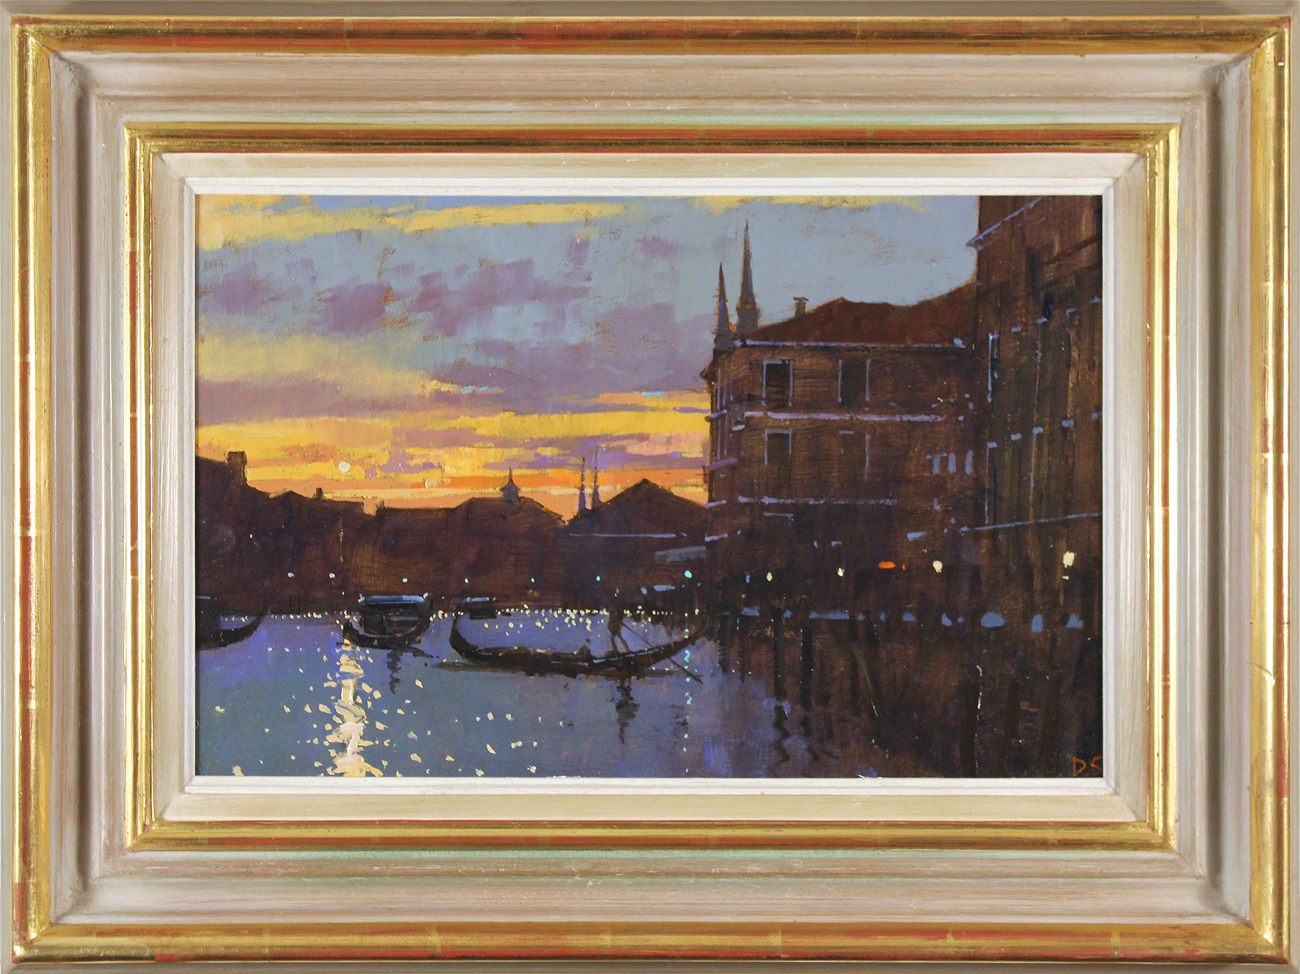 David Sawyer, RBA, Original oil painting on panel, Winter Sunset, the Grand Canal, Venice. Click to enlarge